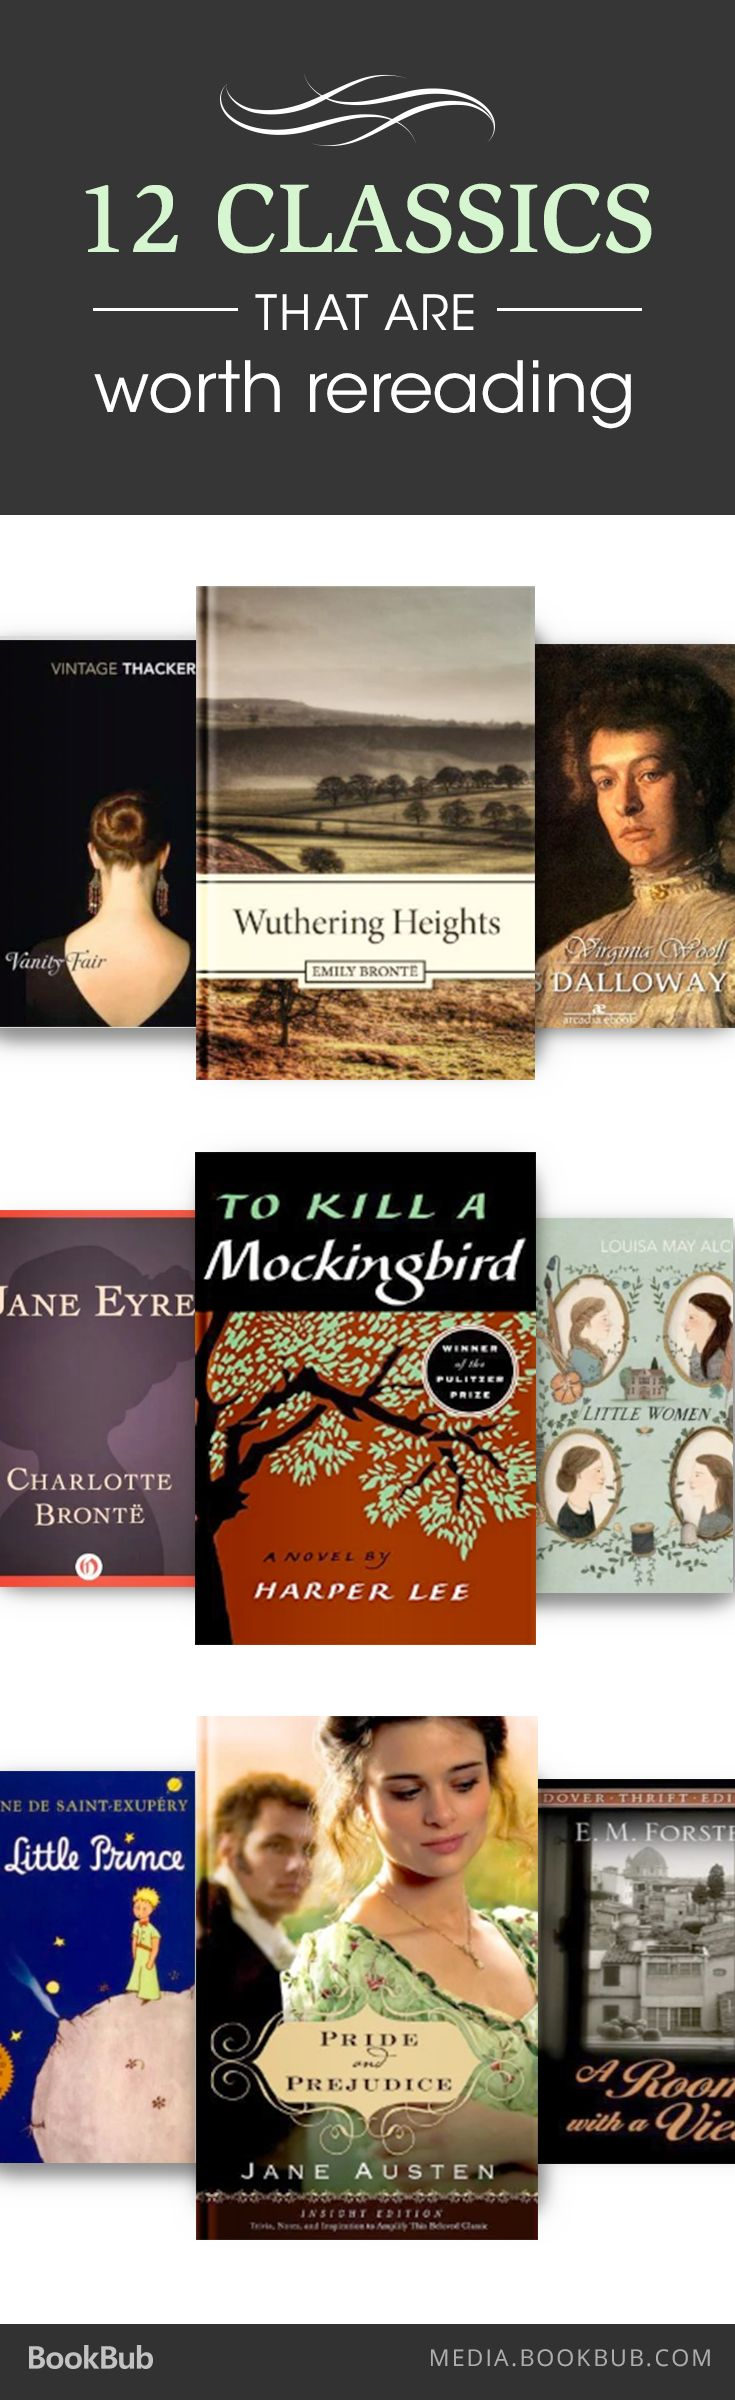 best ideas about kill a mockingbird to kill a 12 classics that are worth rereading in 2016